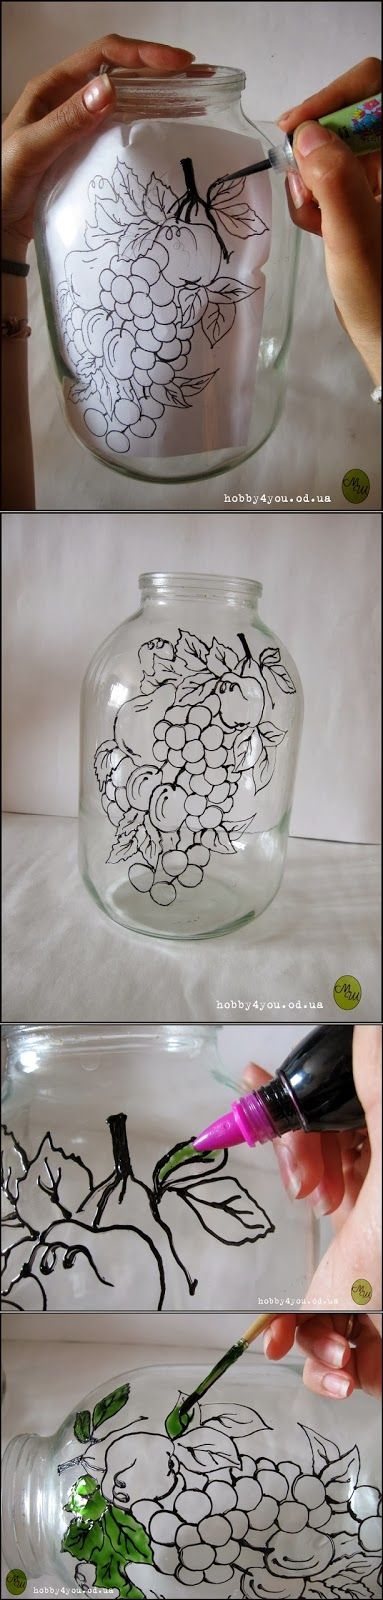 Diy Projects: DIY Glass Art